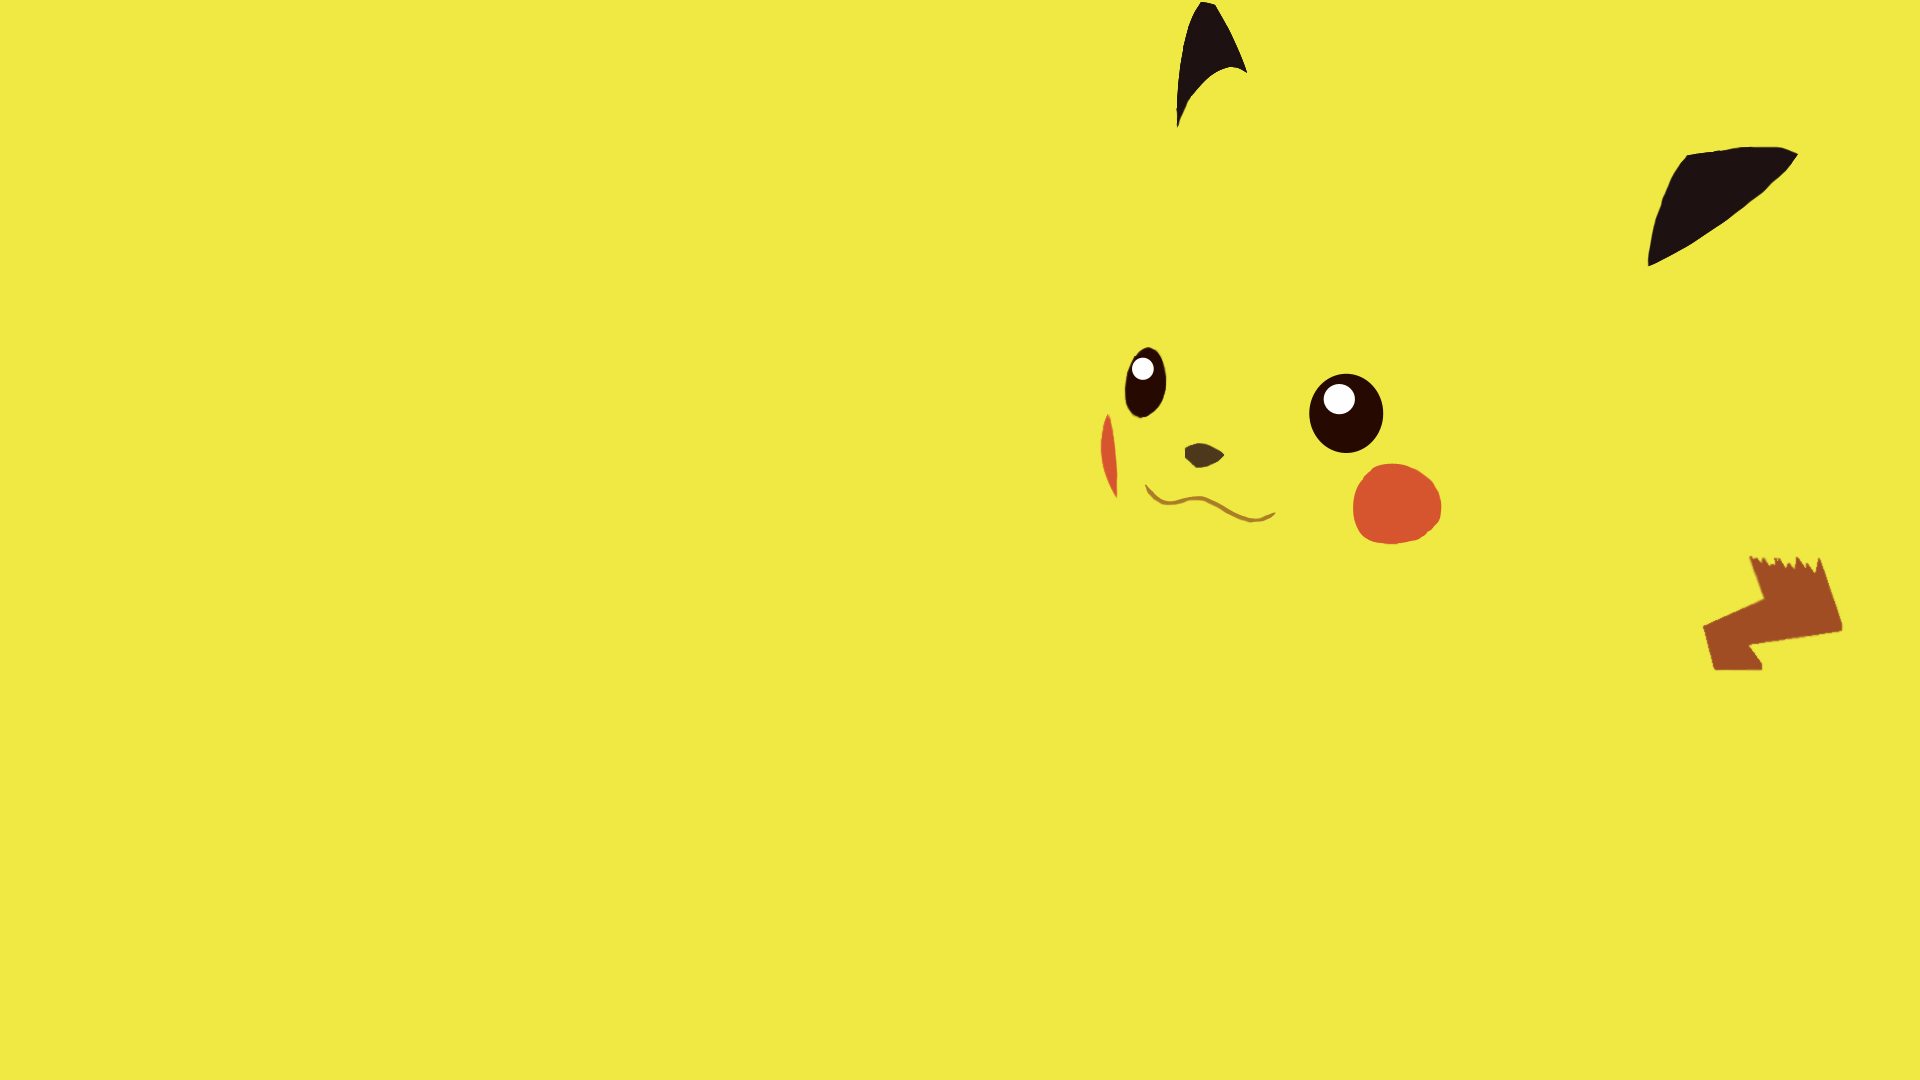 yellow Pikachu